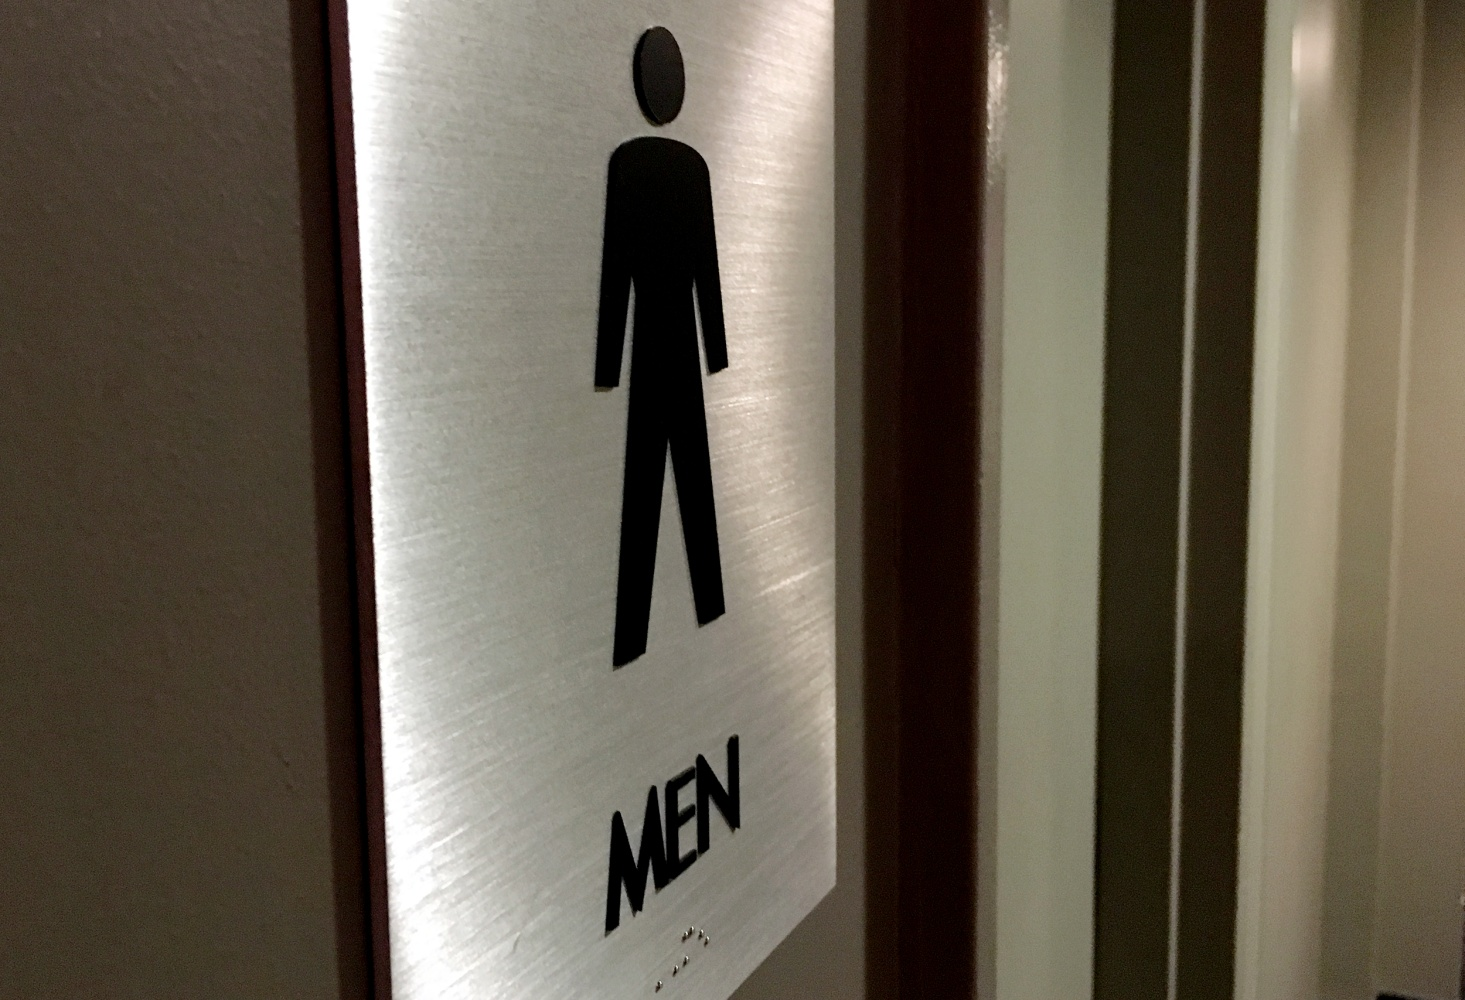 Bathroom Break For Work : Firm fined for requiring workers to clock out bathroom